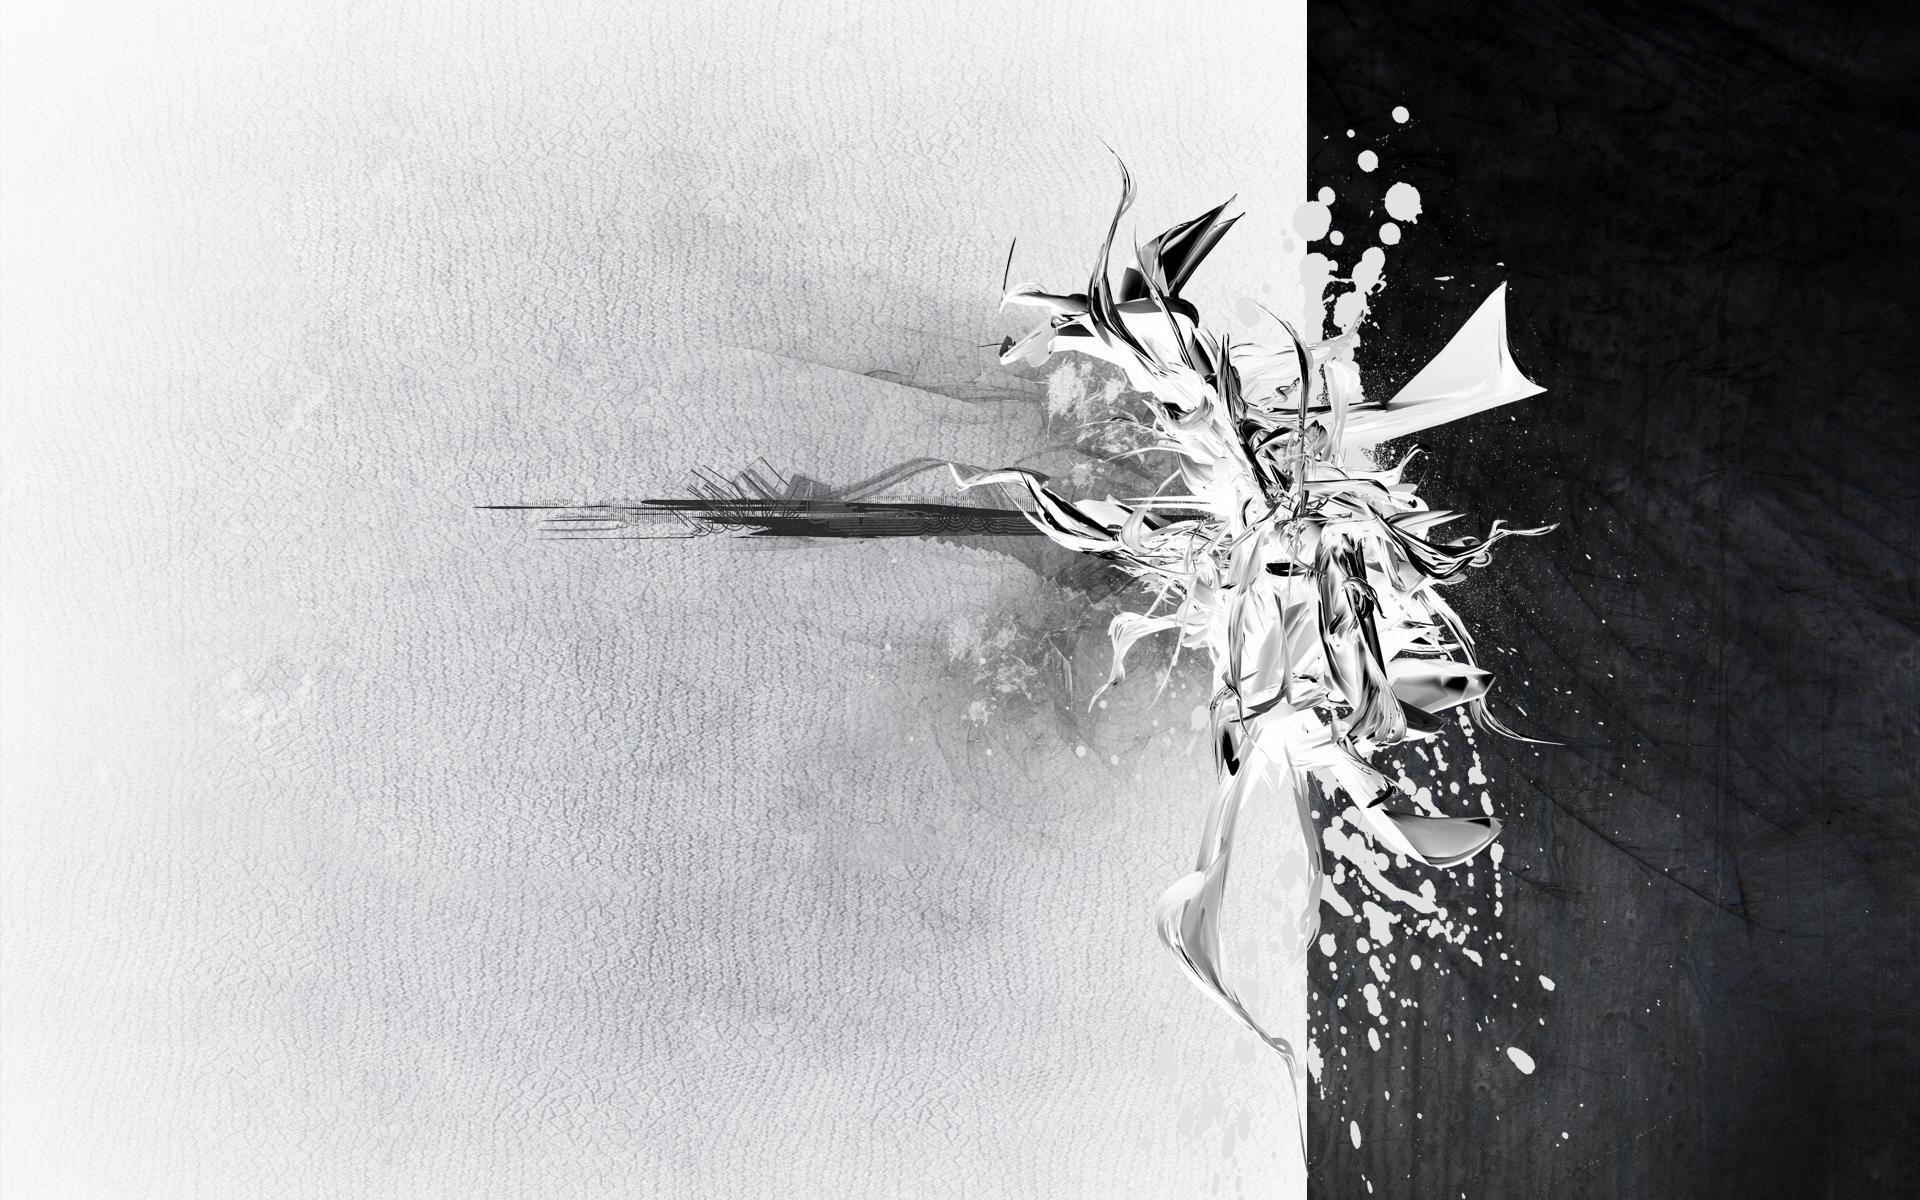 Abstract In White Free Black And Hd 388904 Wallpaper wallpaper